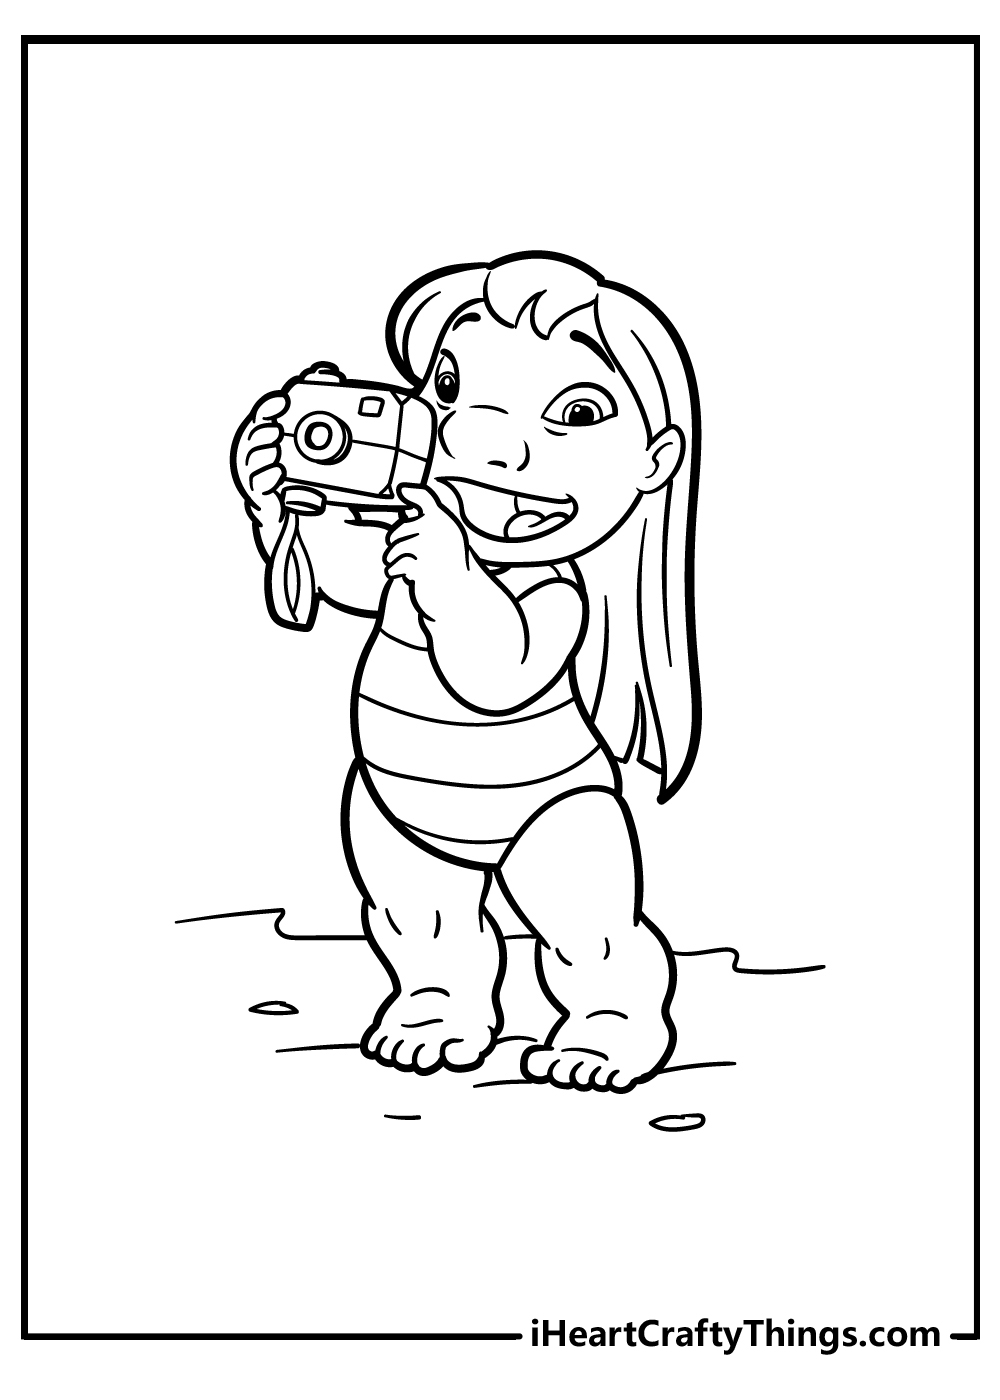 lilo&stitch colouring pages free download